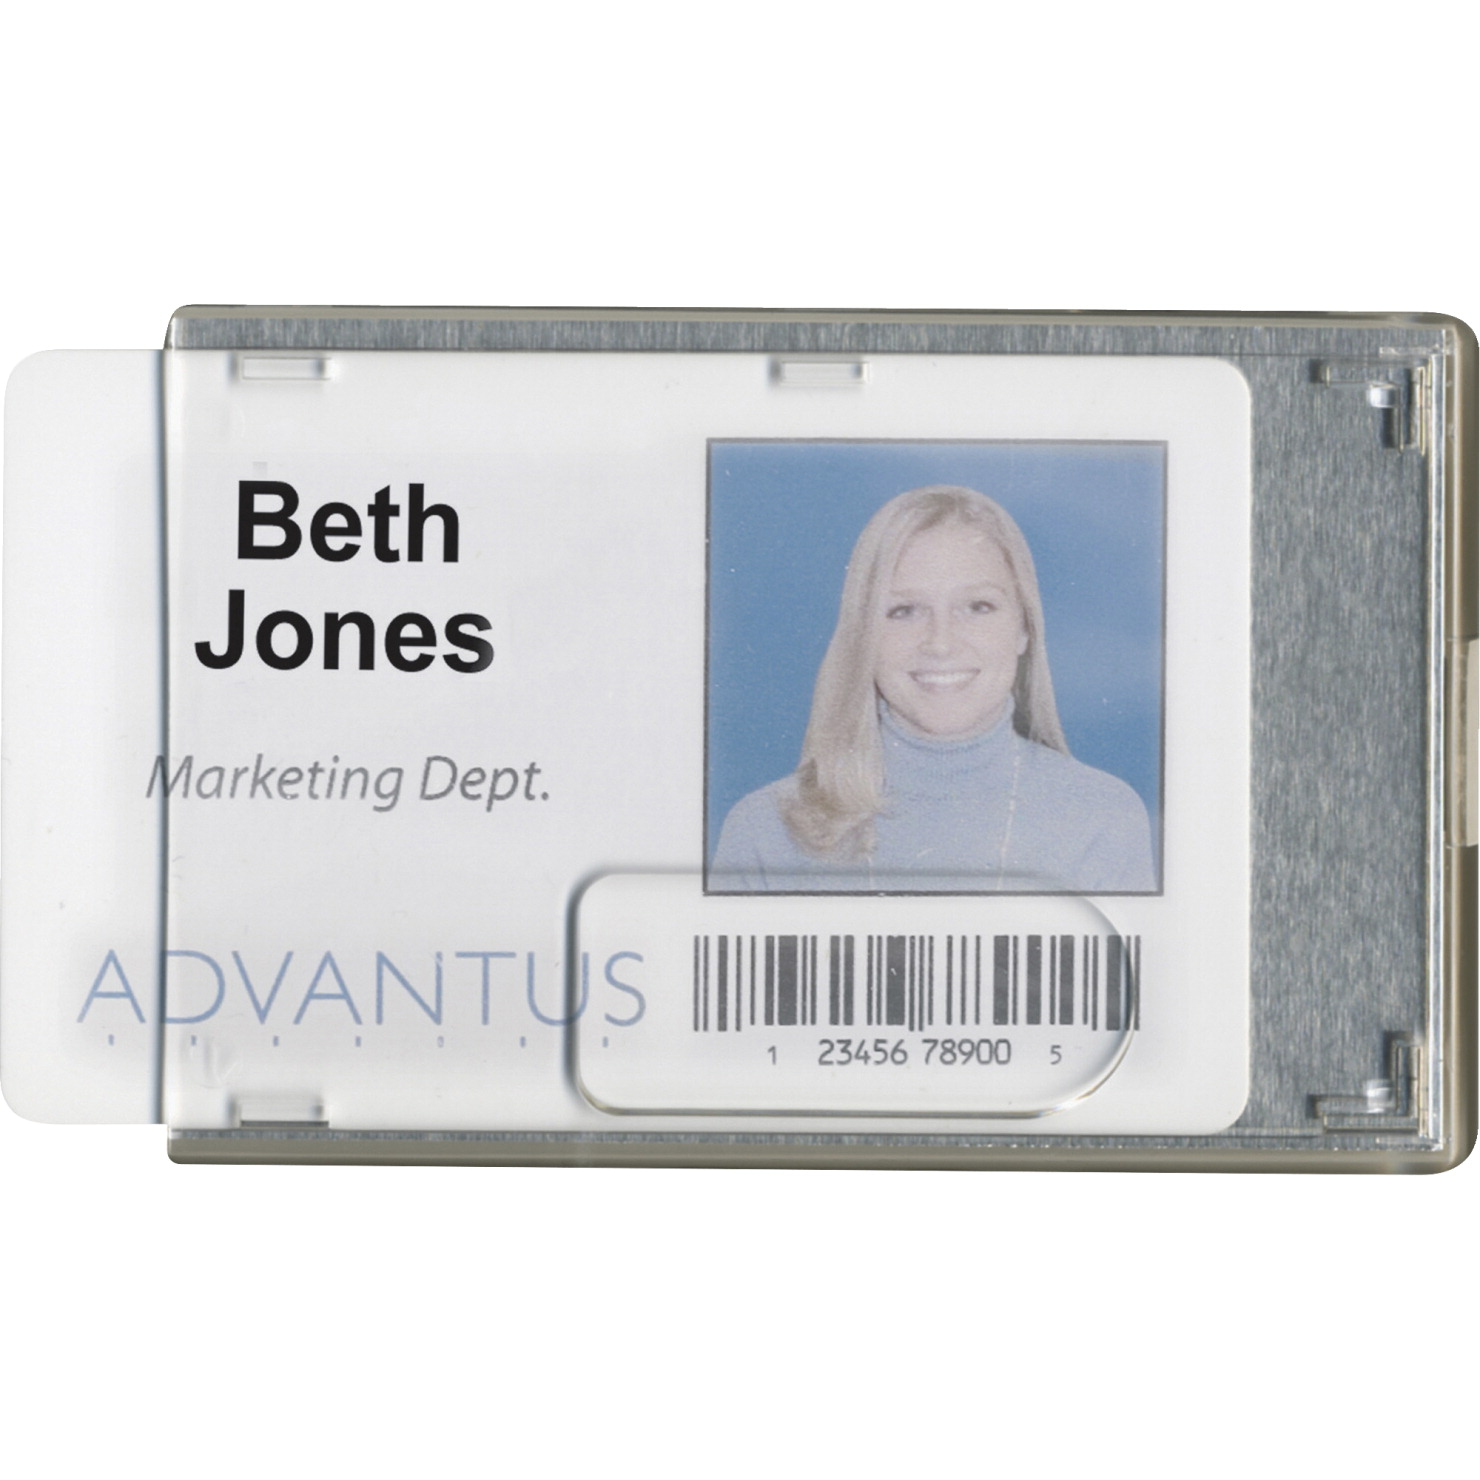 Advantus Badge Holders, RFID Blocking, 3-3/8 x 2-1/8 Inch, Pack of 20, Clear